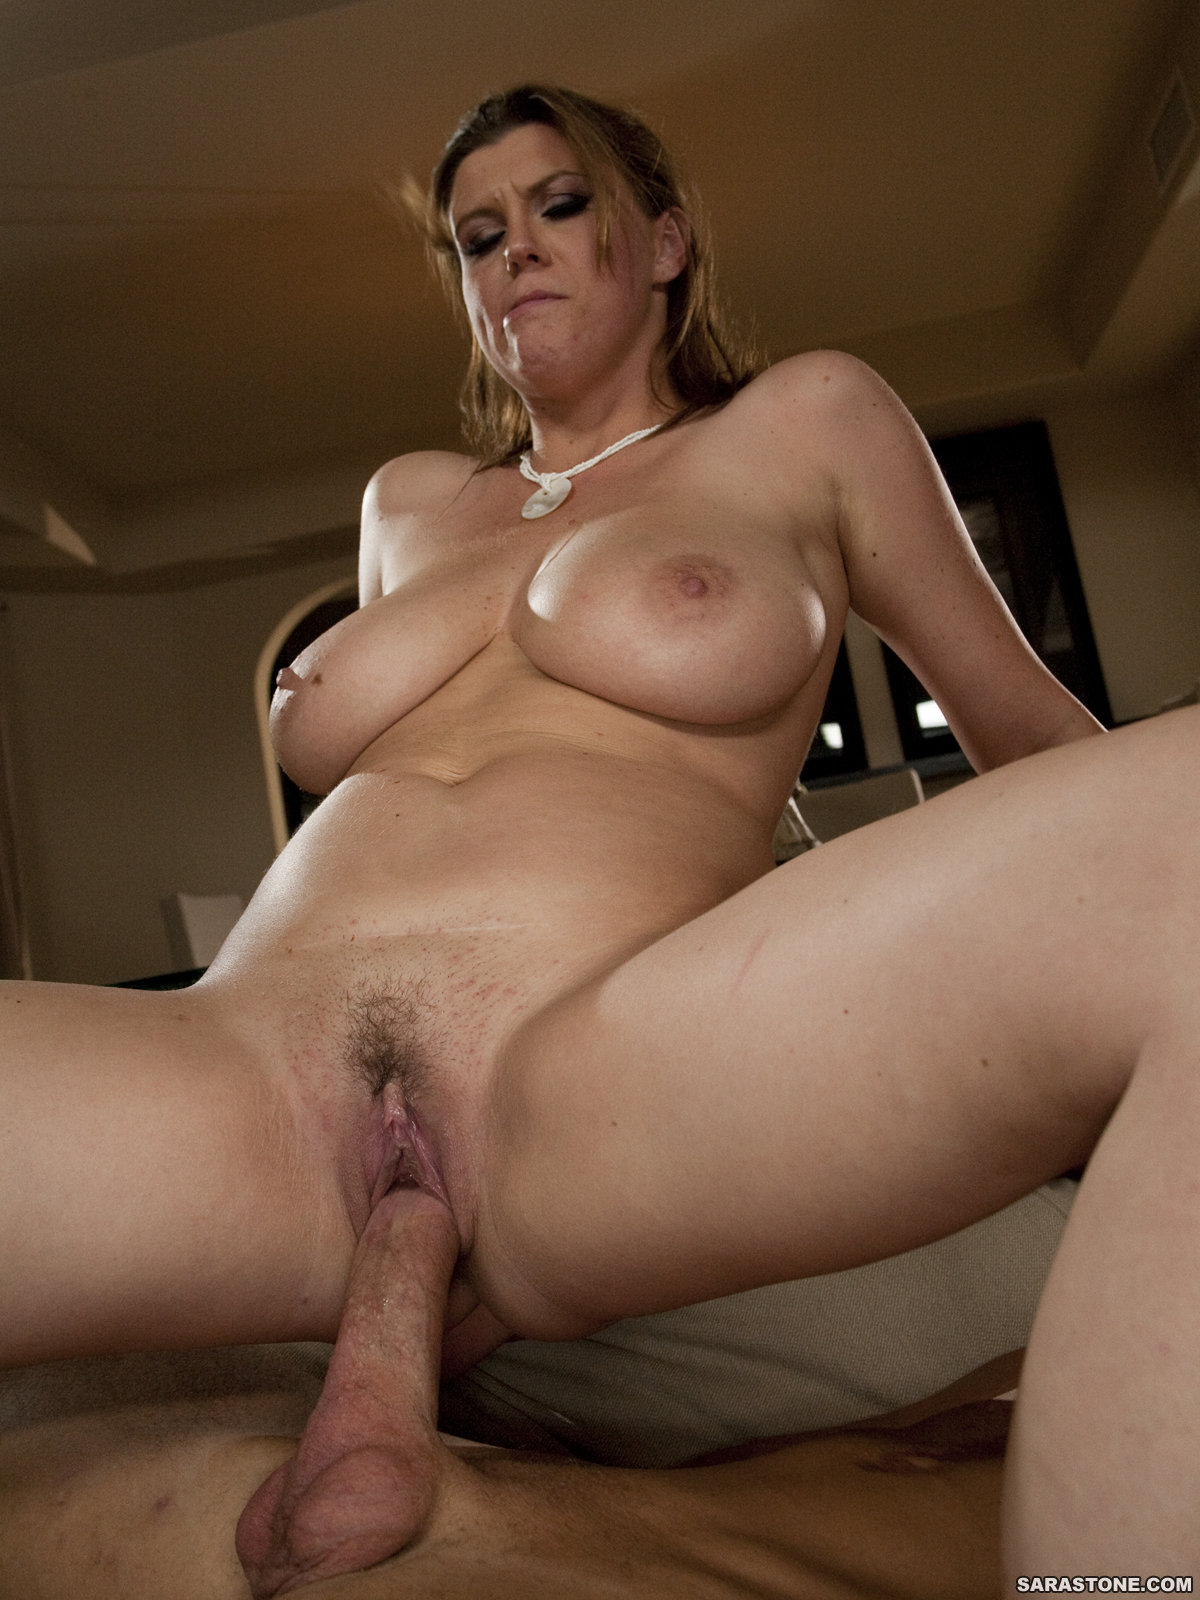 Big tits milf devon lee on a sensual fuck - 2 part 1